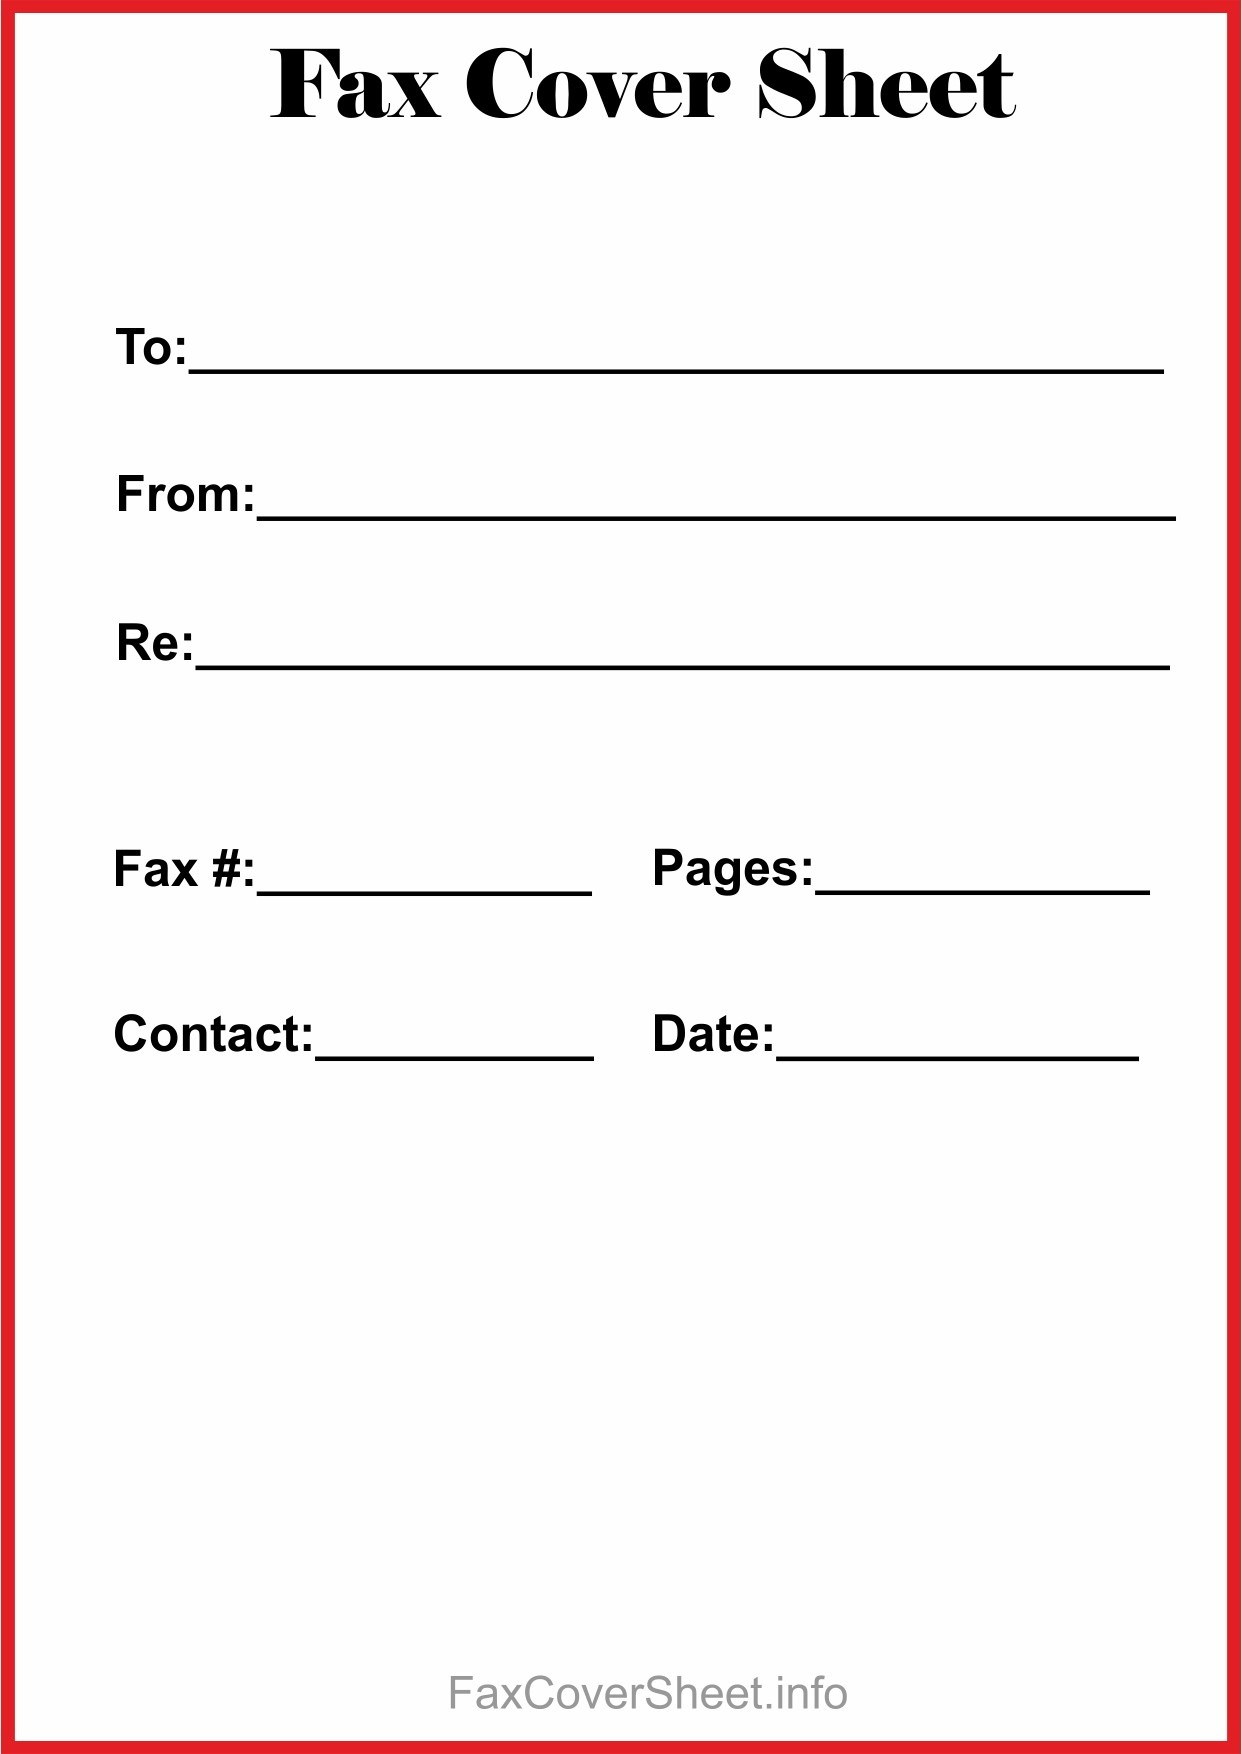 Fax Cover Sheet Fillable New Free Fax Cover Sheet Template - Free Printable Fax Cover Page